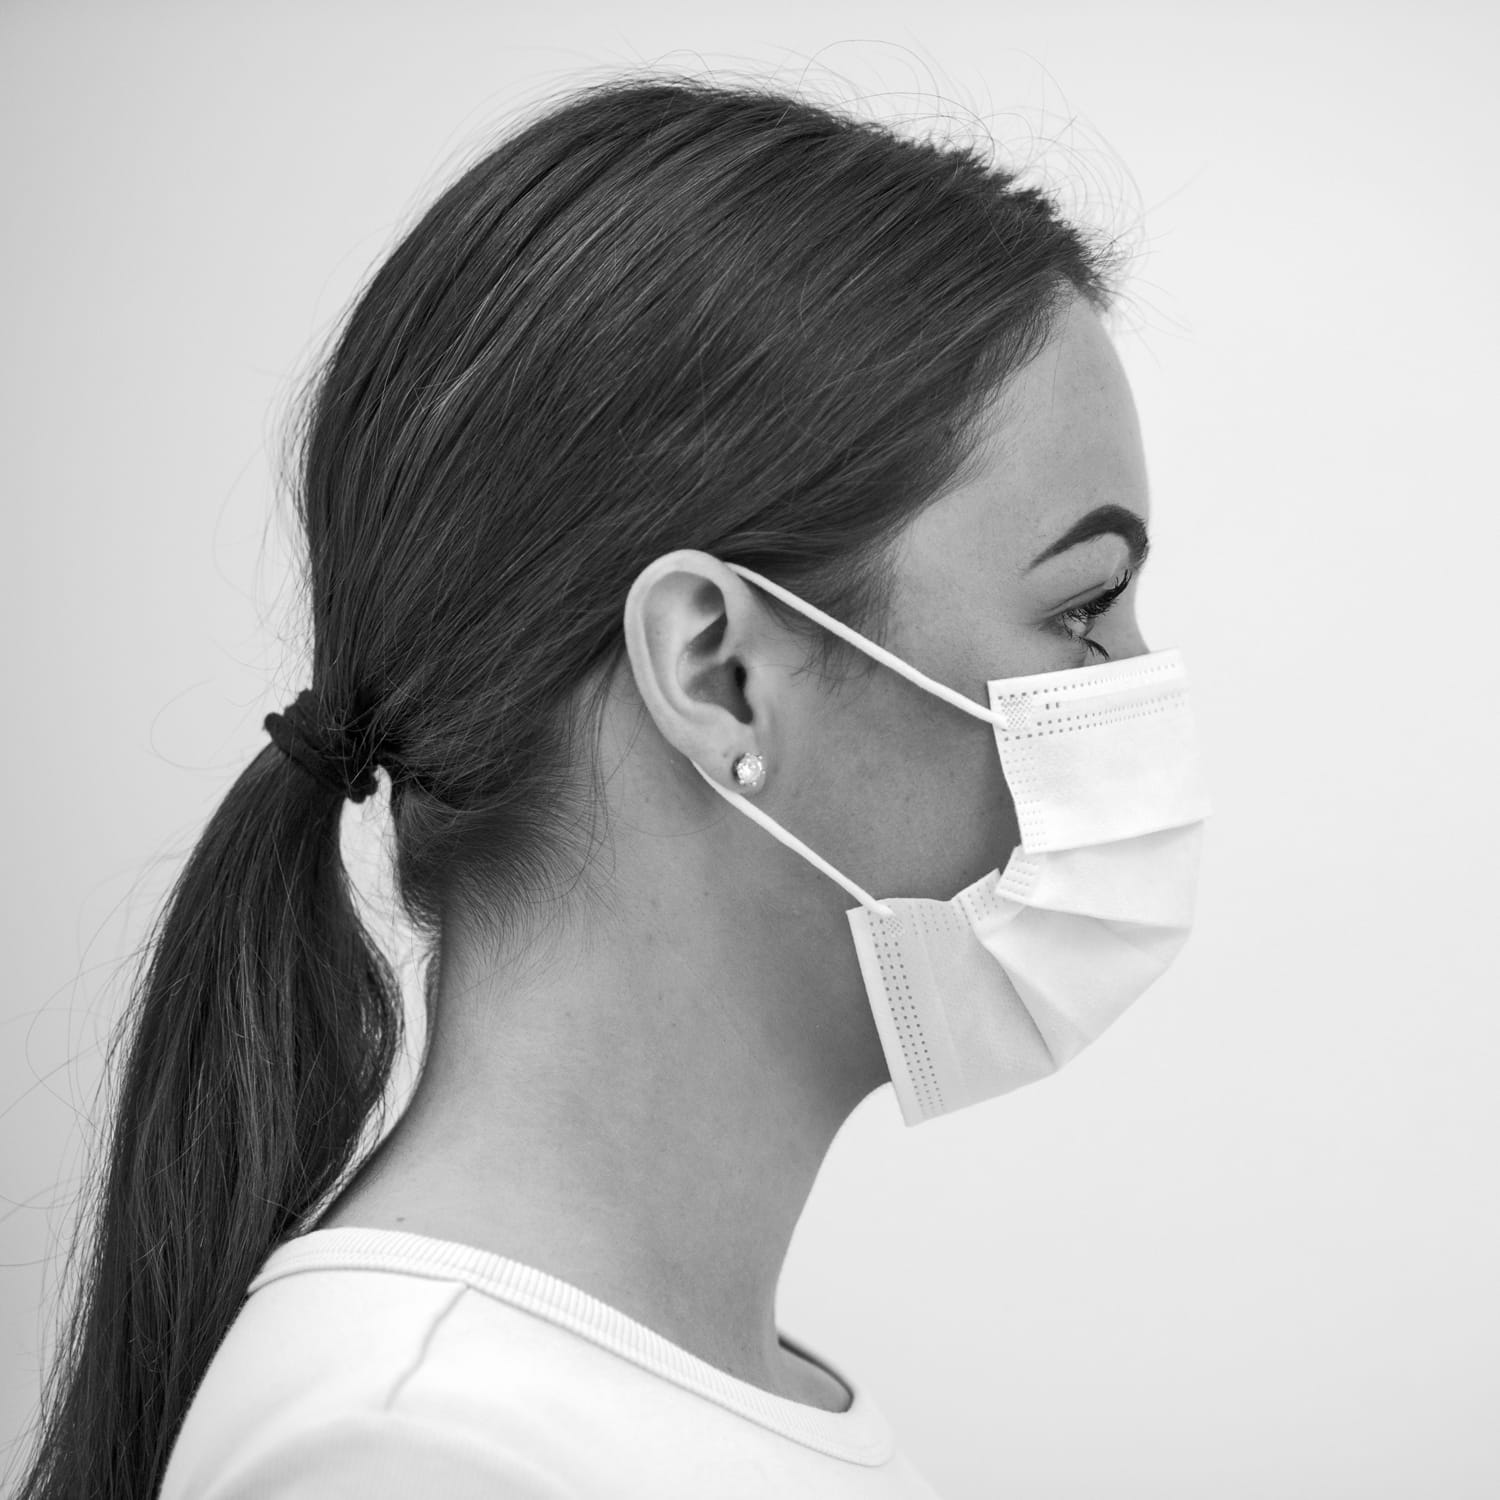 Disposable medical face mask Type IIR, 3-layer with ear loops, 50 units